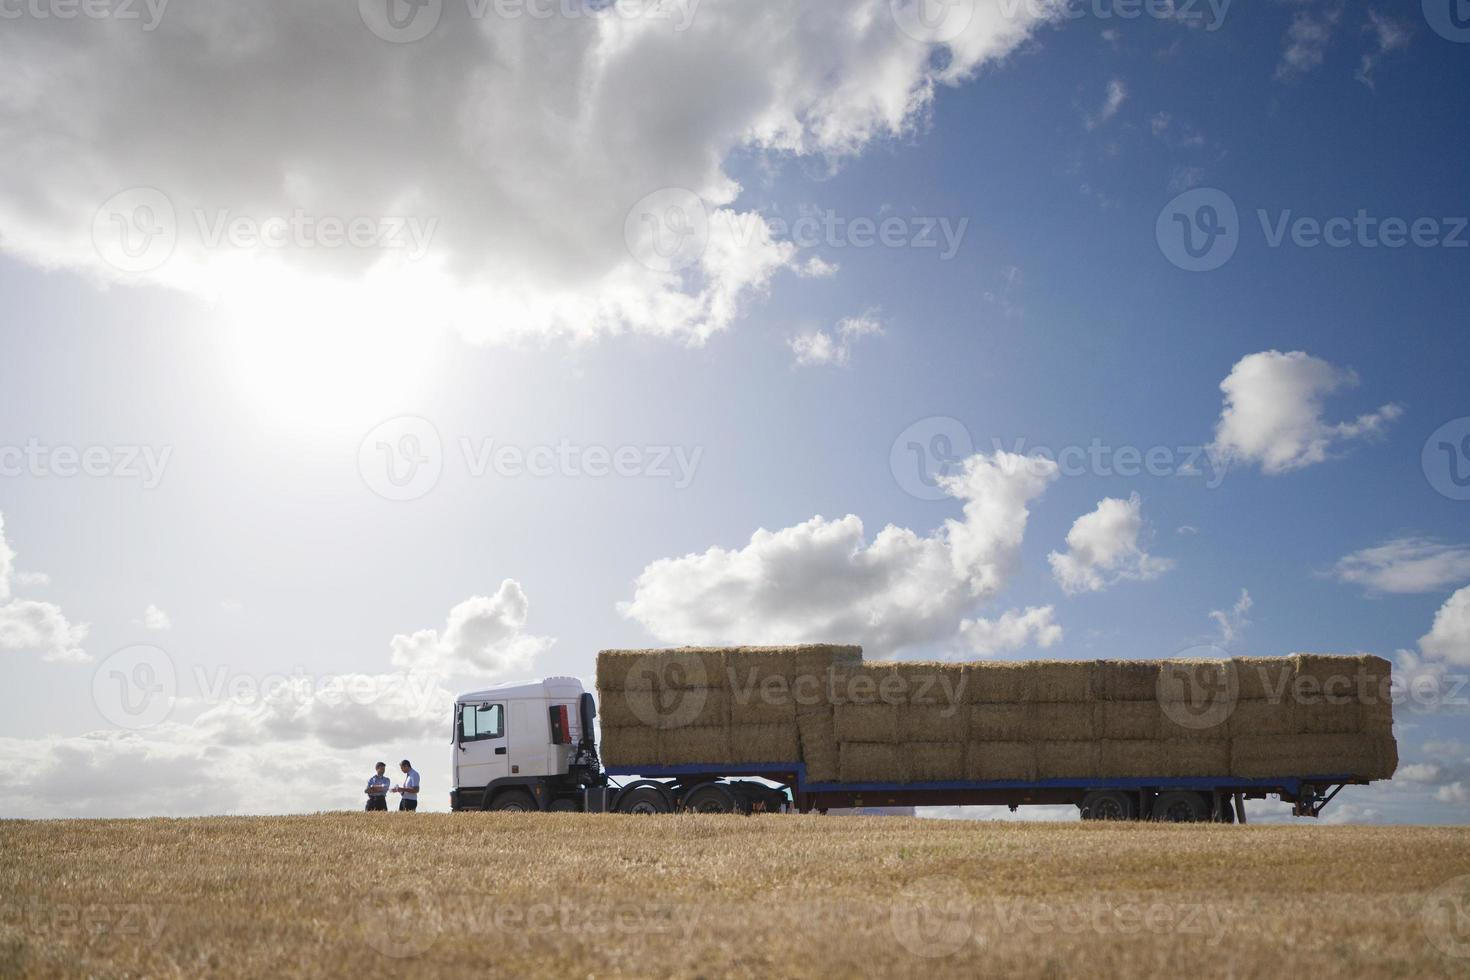 Straw bales on trailer in sunny, rural field photo